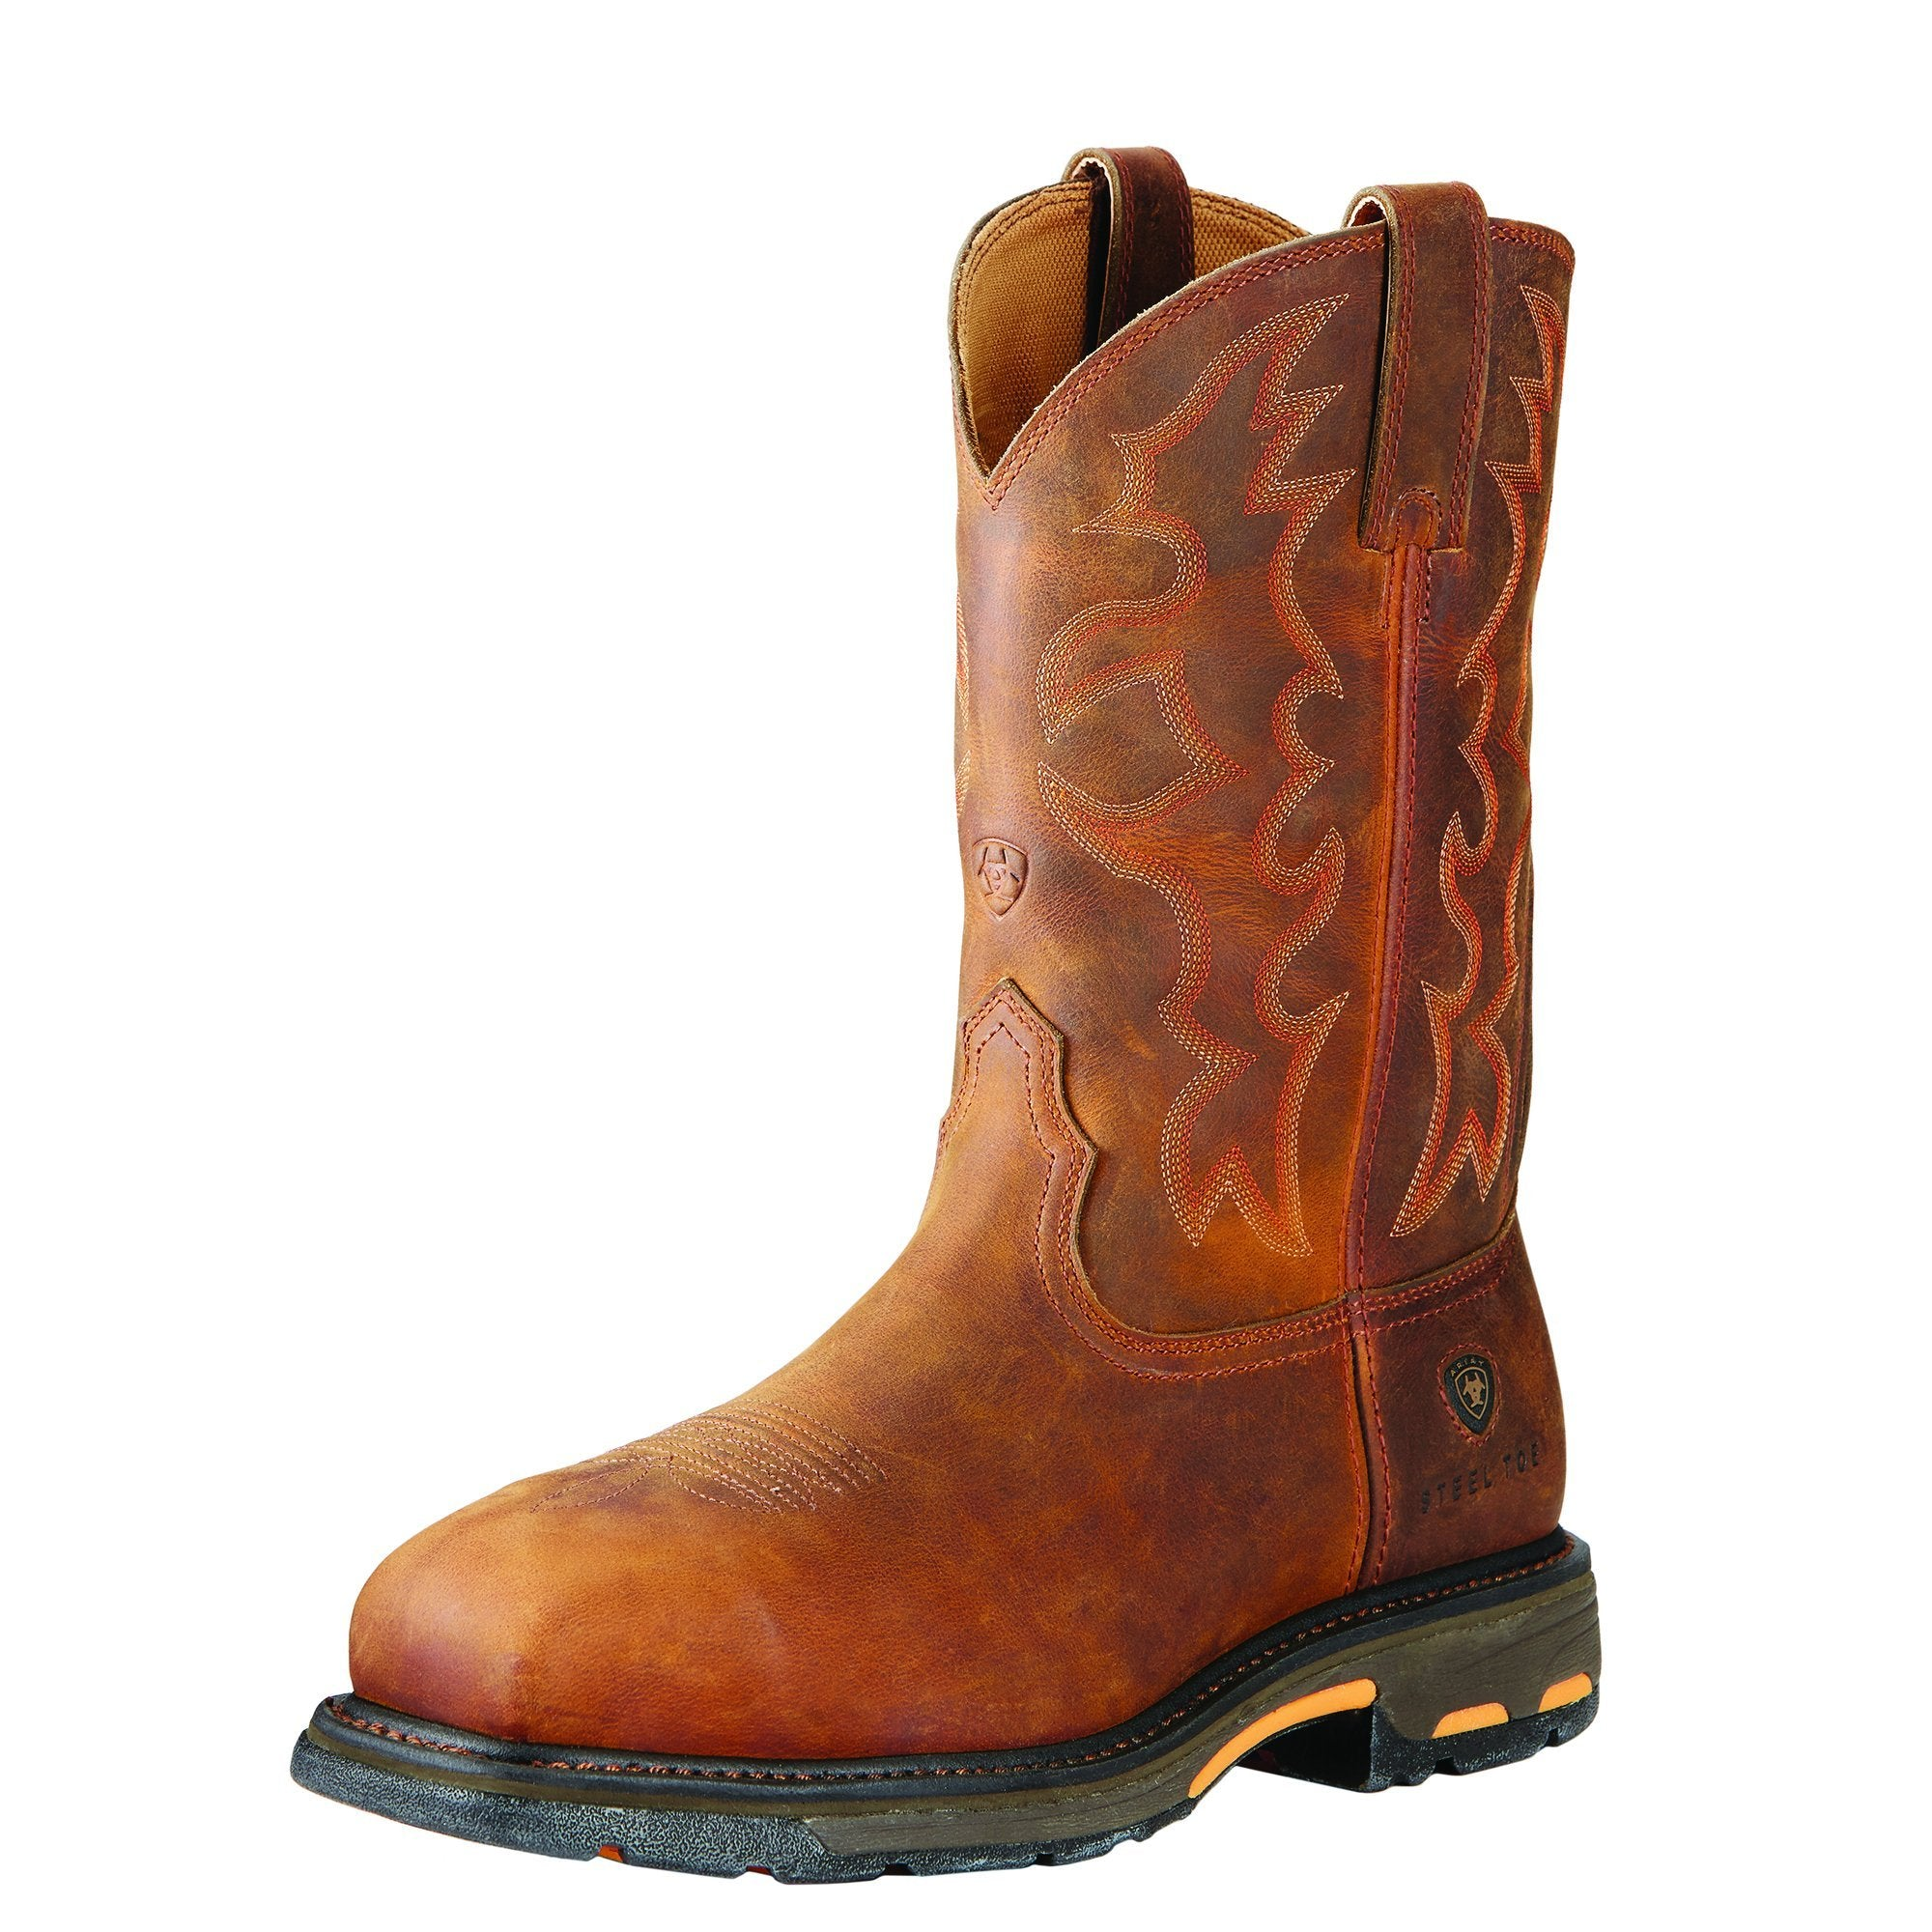 10016568 Ariat Men's Workhog Steel Toe